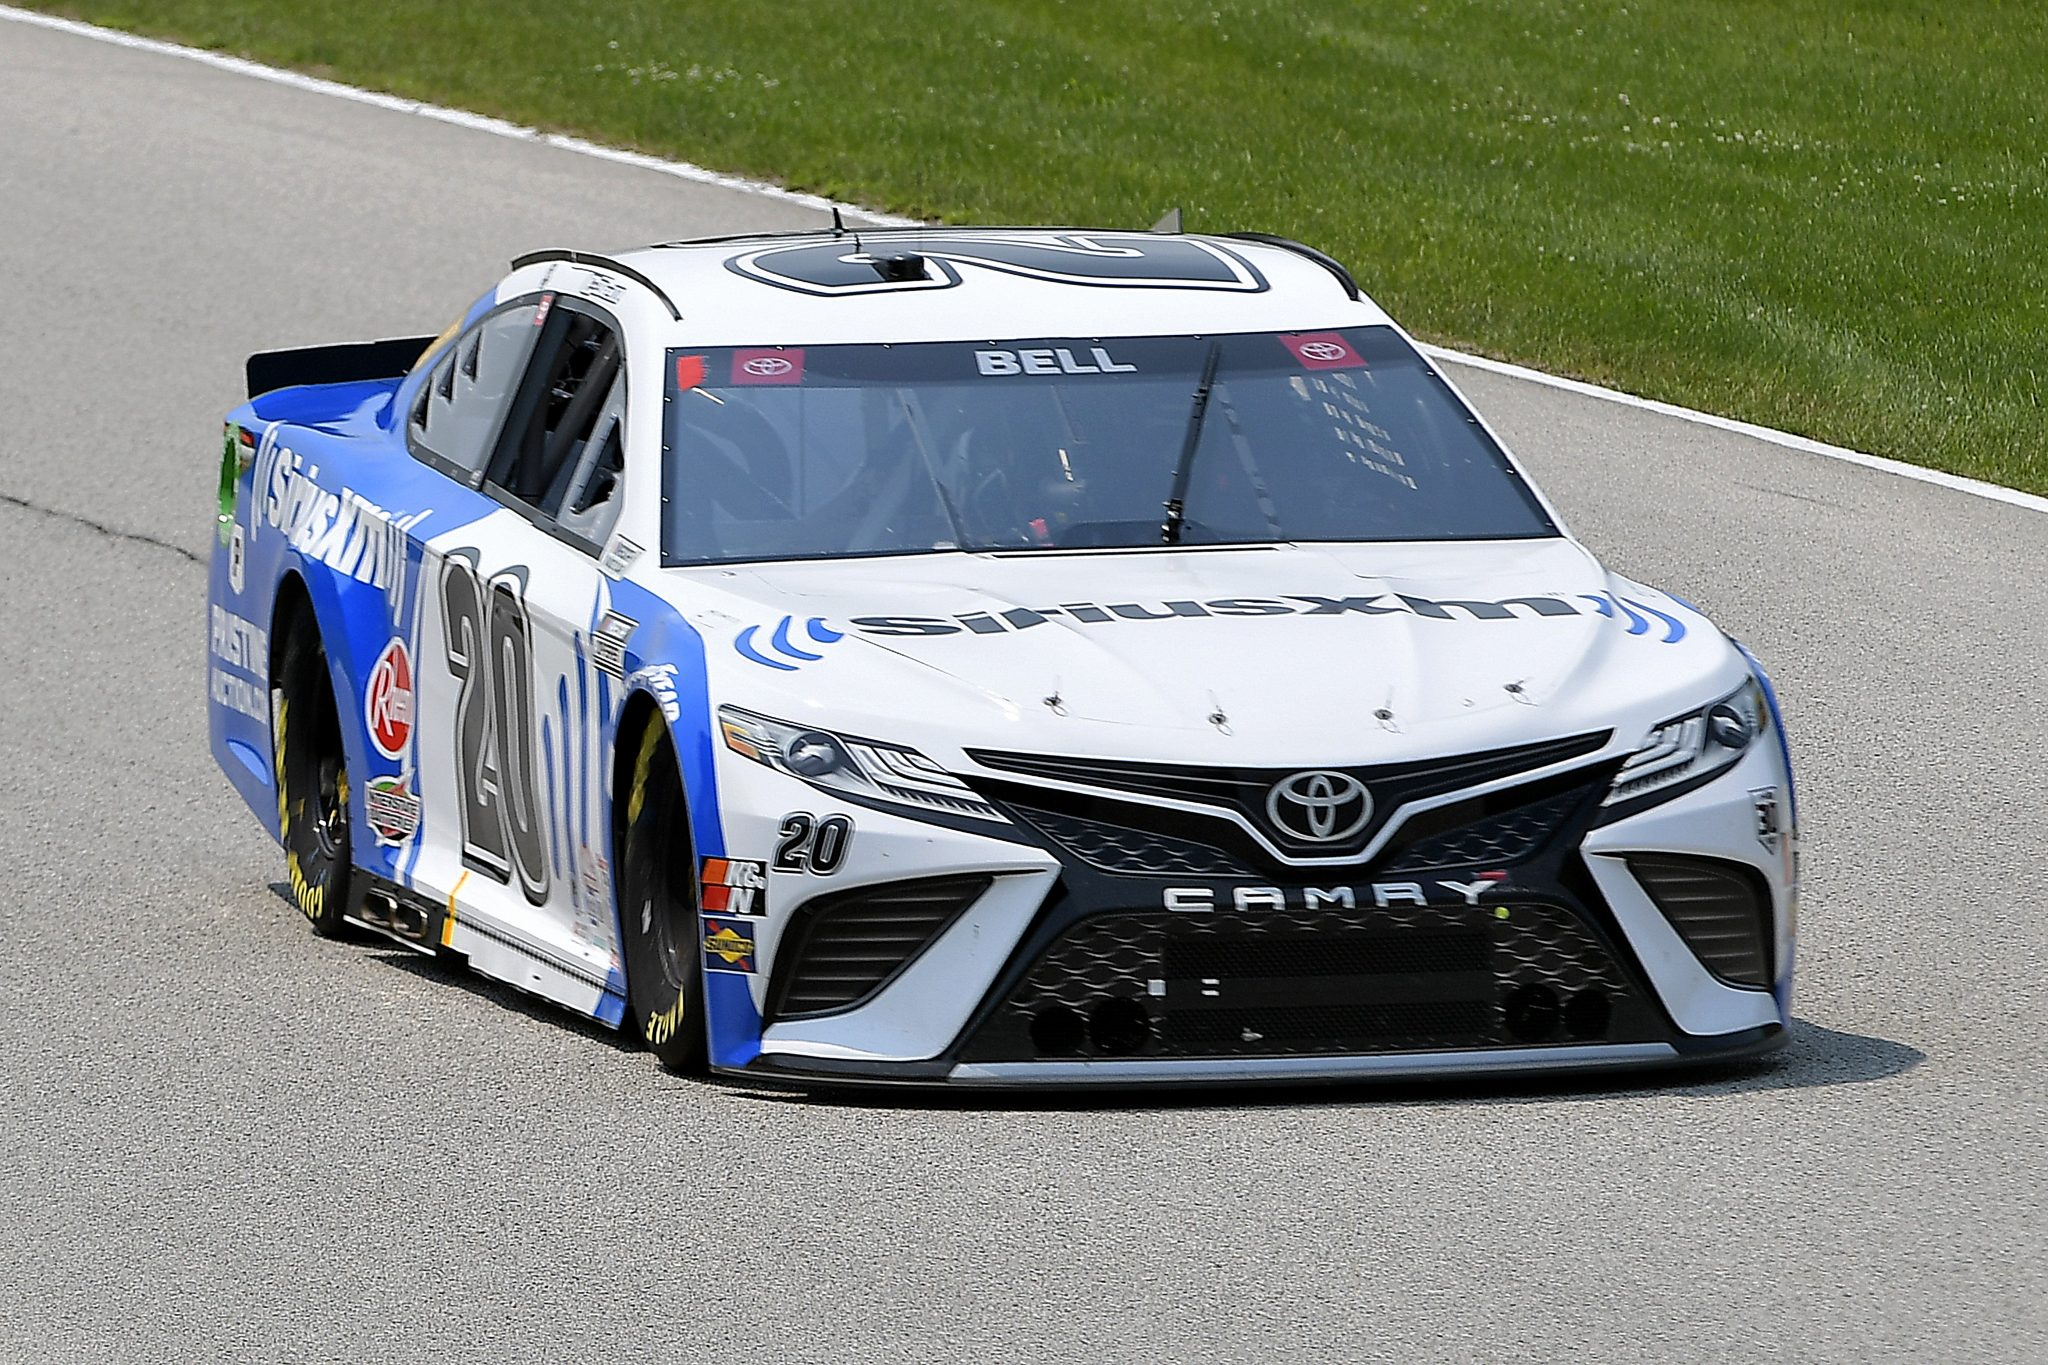 ELKHART LAKE, WISCONSIN - JULY 03: Christopher Bell, driver of the #20 Sirius XM Toyota, drives during practice for the NASCAR Cup Series Jockey Made in America 250 Presented by Kwik Trip at Road America on July 03, 2021 in Elkhart Lake, Wisconsin. (Photo by Logan Riely/Getty Images) | Getty Images